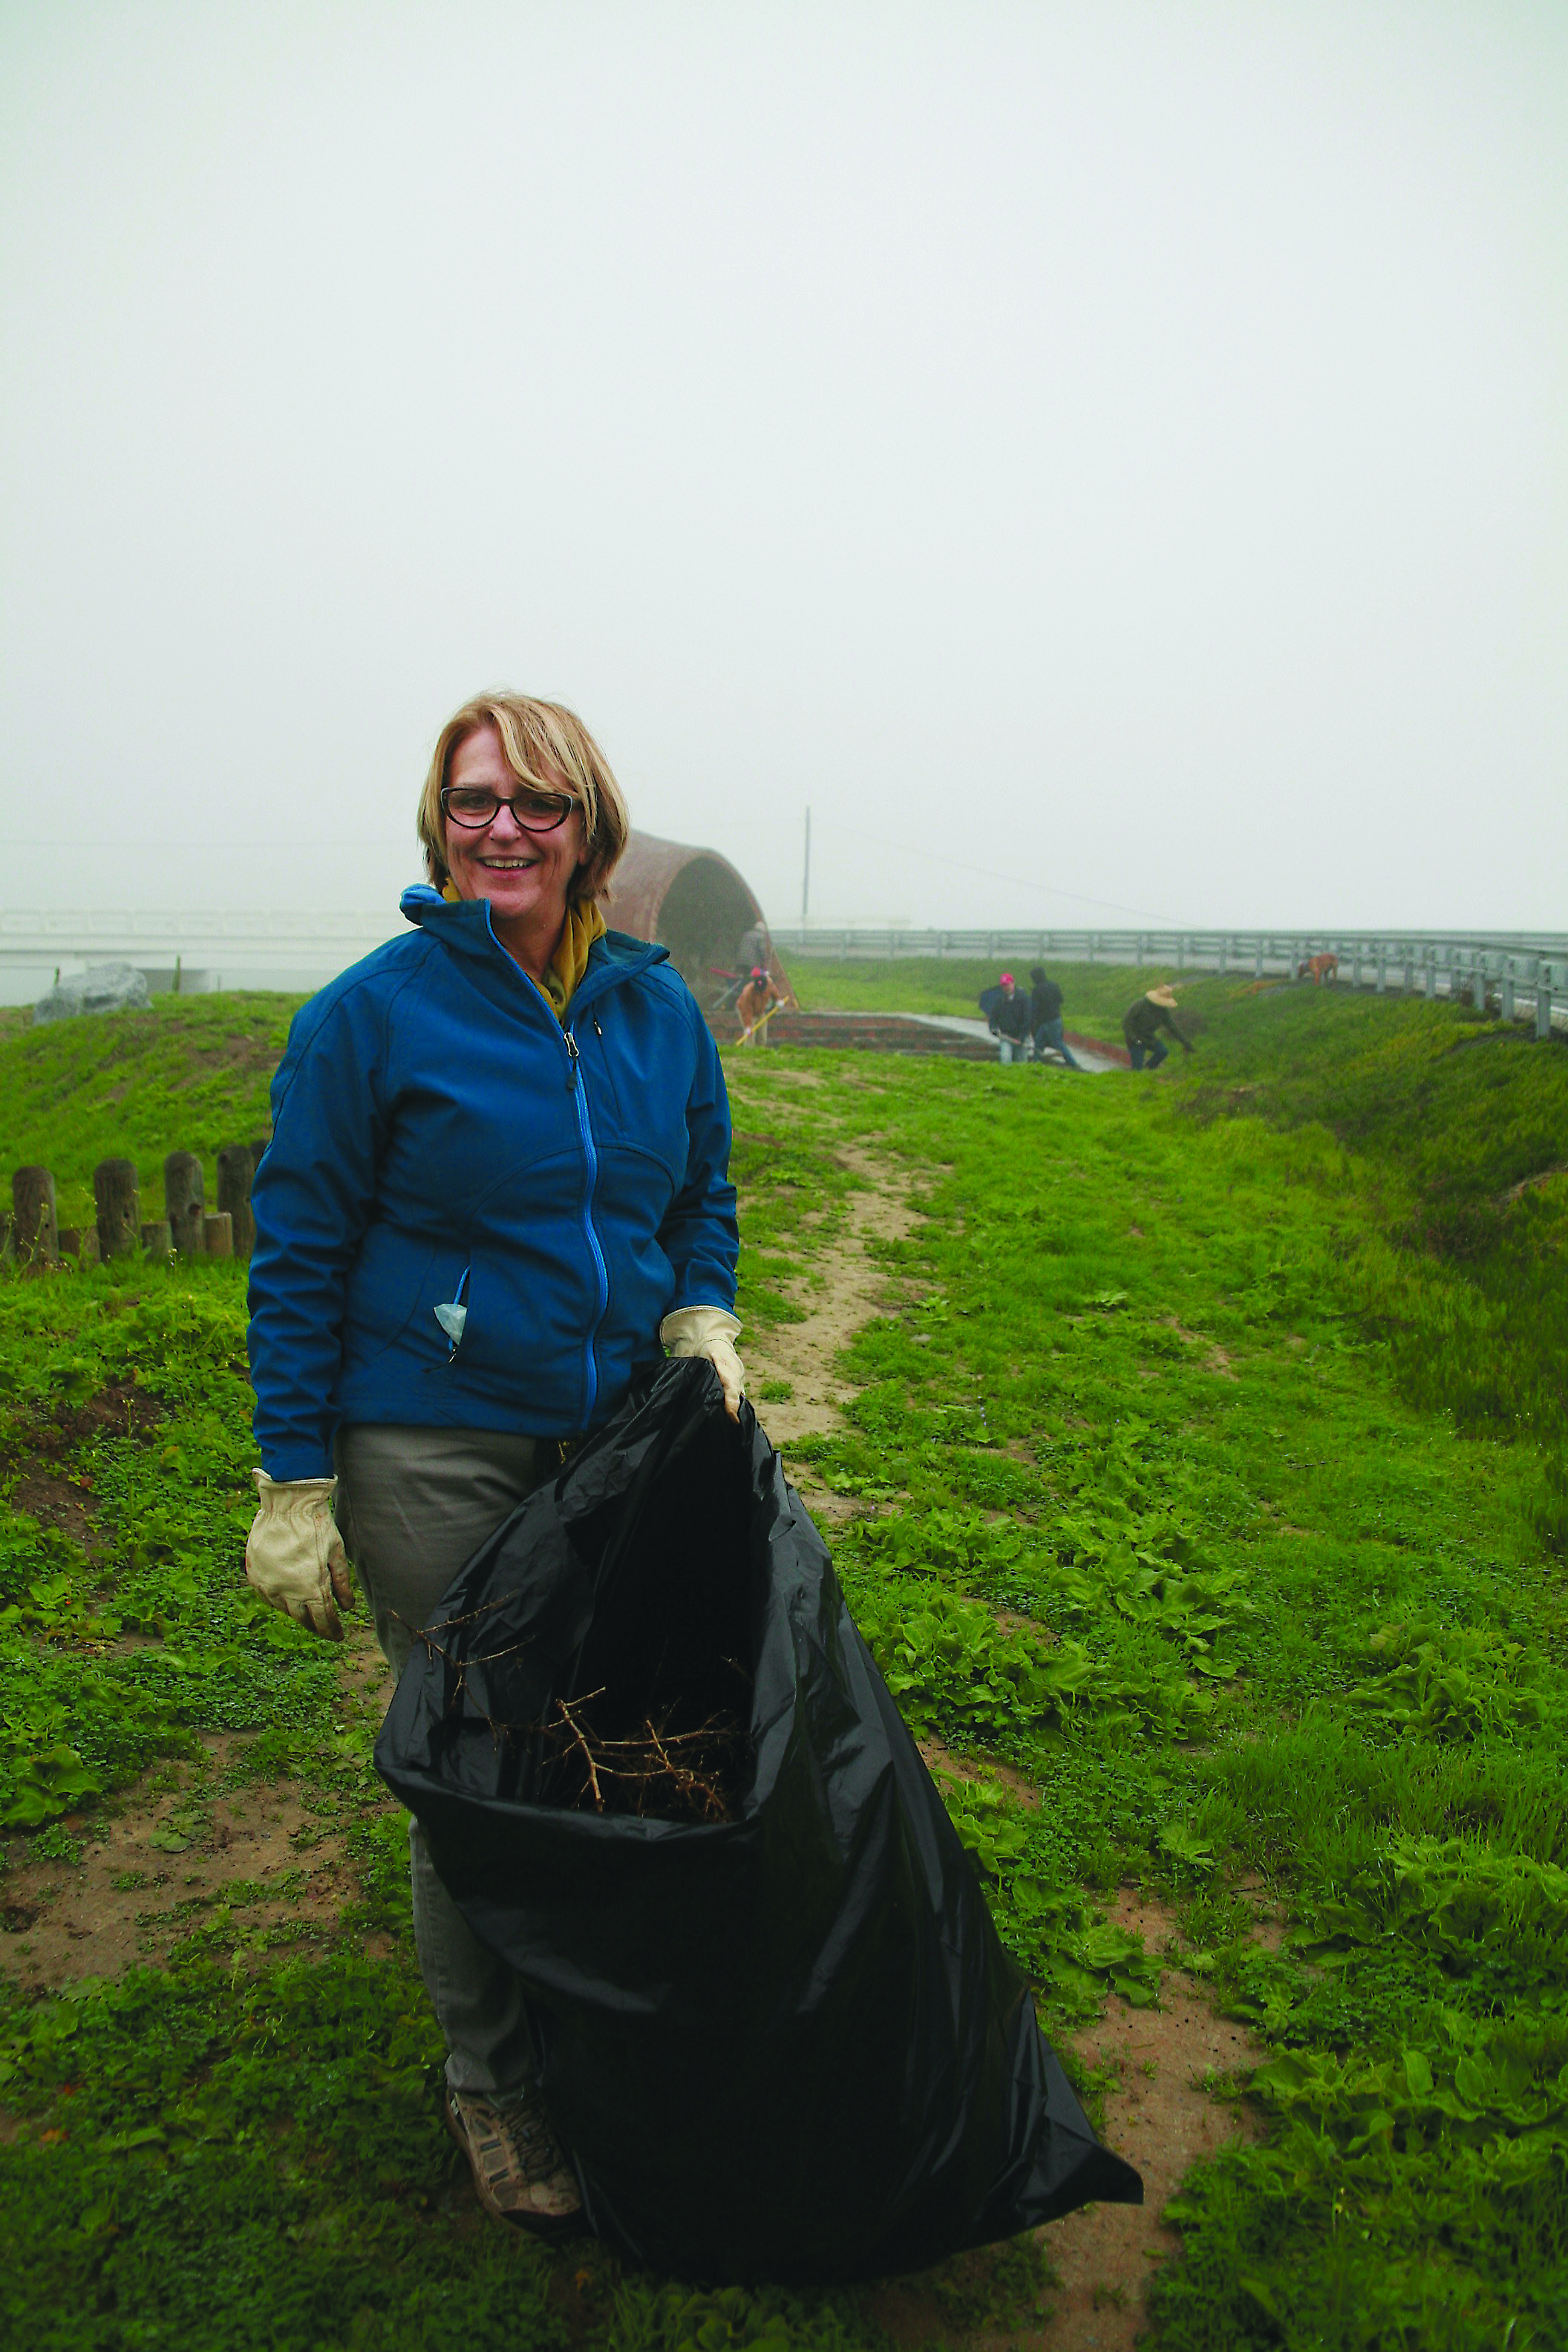 Marianne Gerdes, Ilan-Lael's Executive Director pitches in on the clean up!